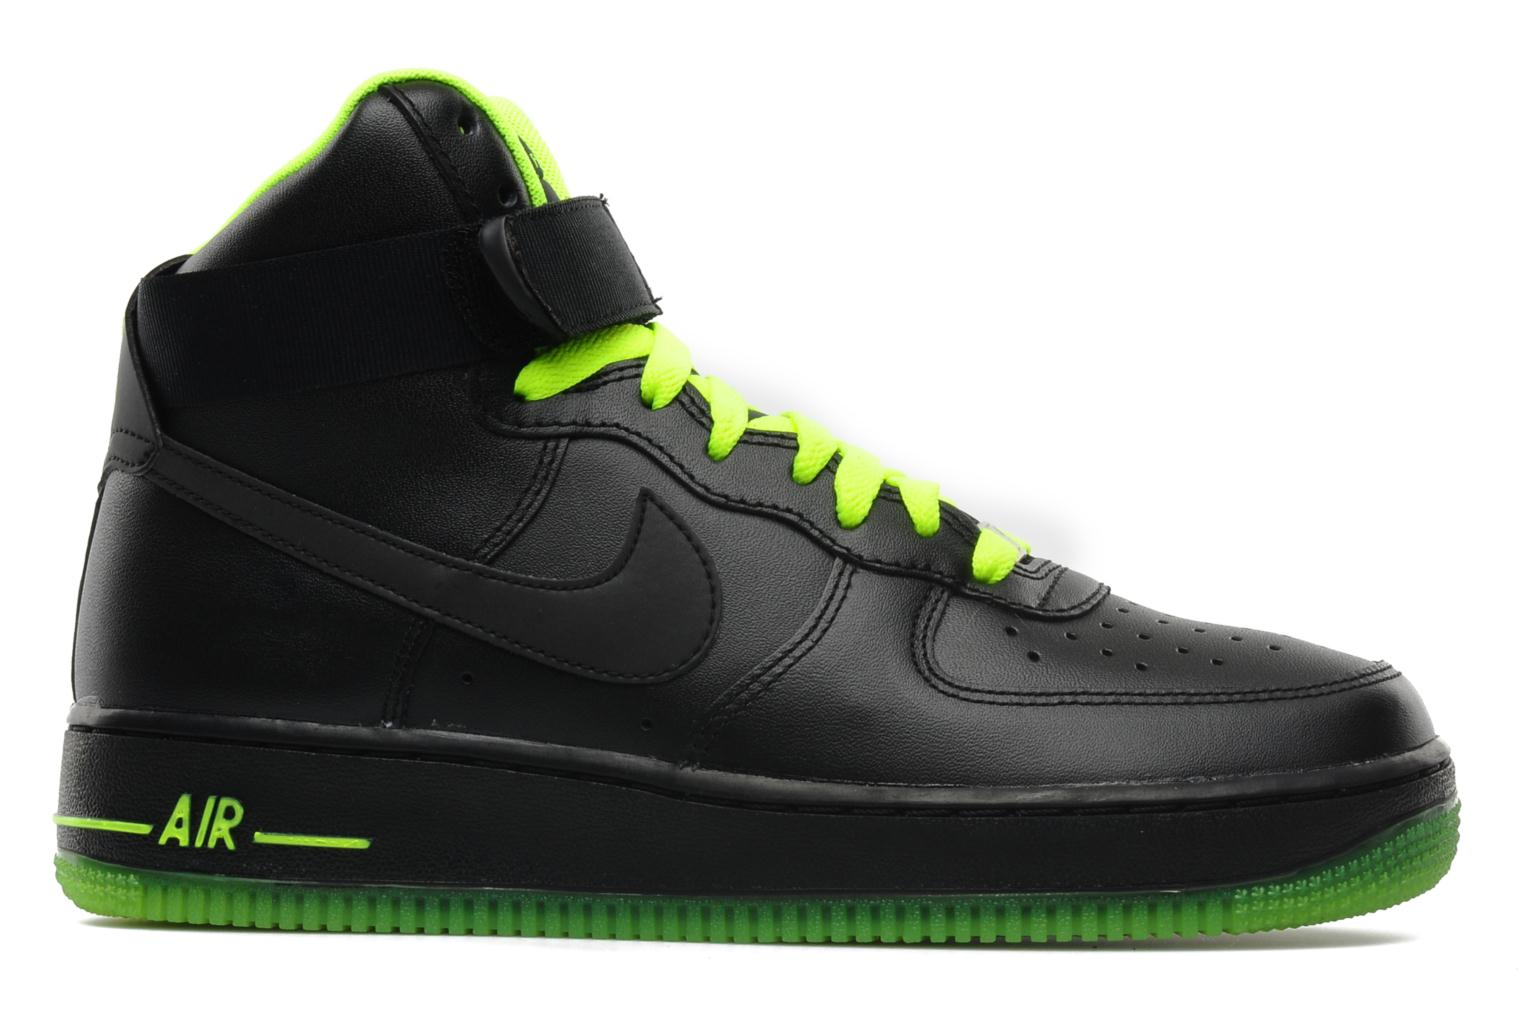 nike air force 1 high 39 07 trainers in black at 113009. Black Bedroom Furniture Sets. Home Design Ideas